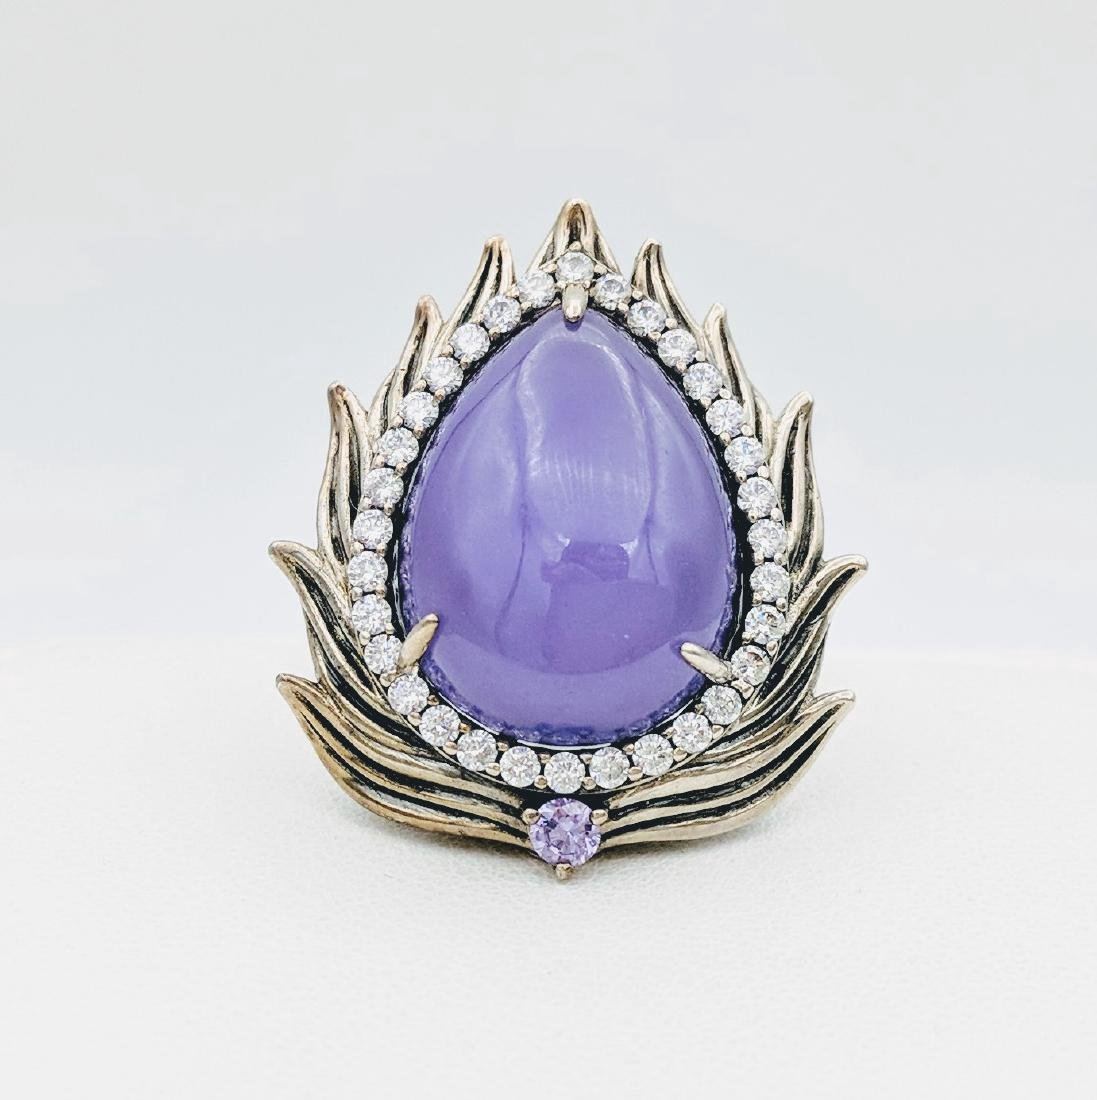 Sterling Silver Imperial Designed Violet Jade Ring with